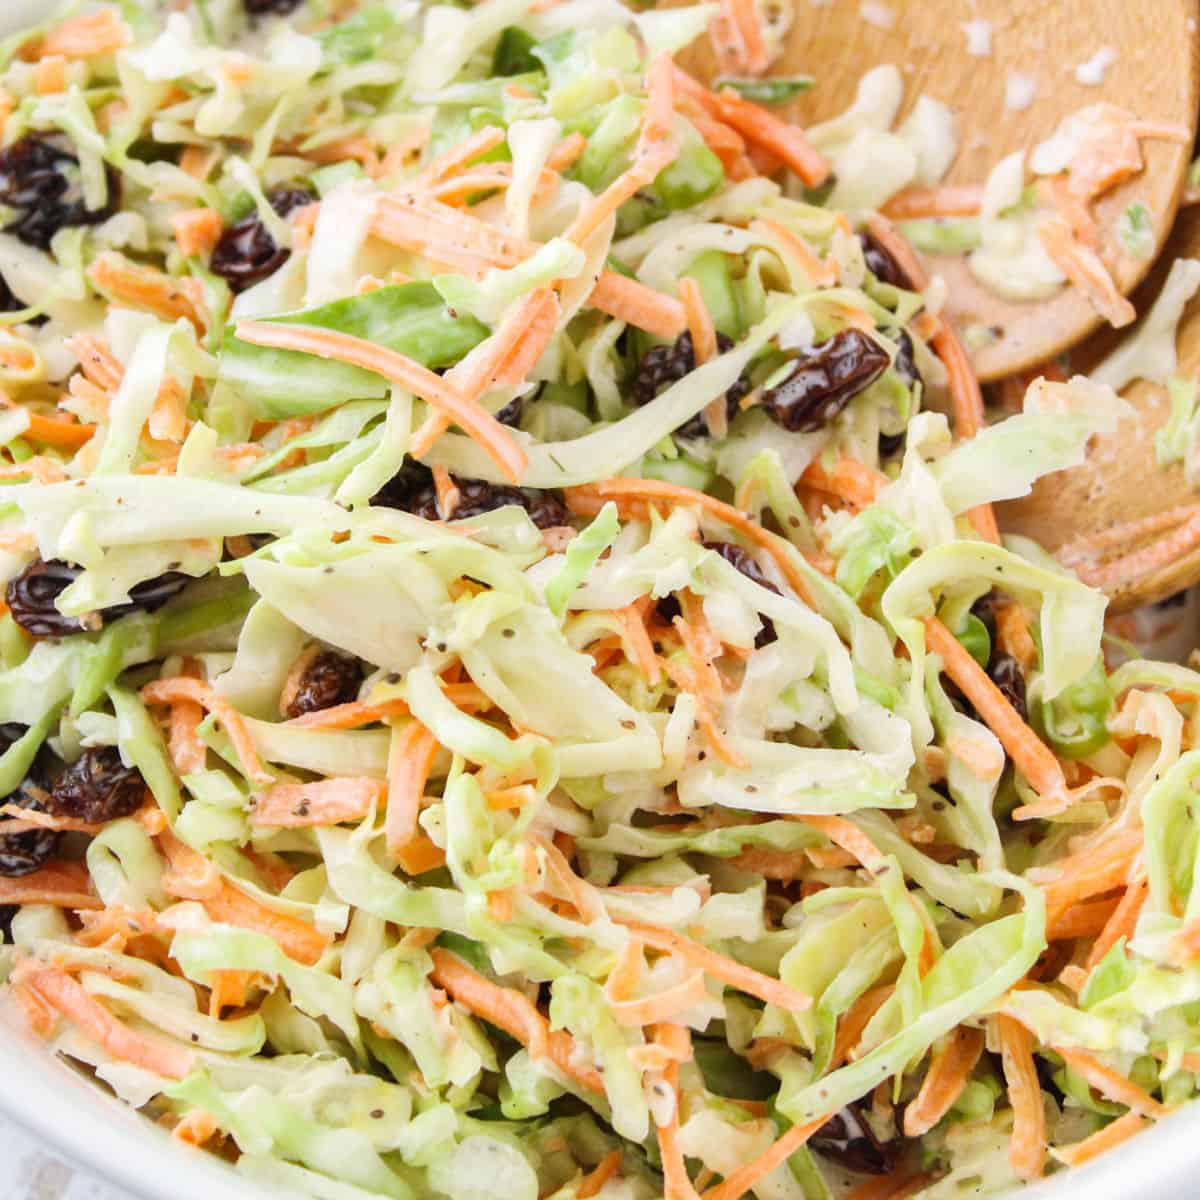 square close up image of summer coleslaw in a white serving bowl